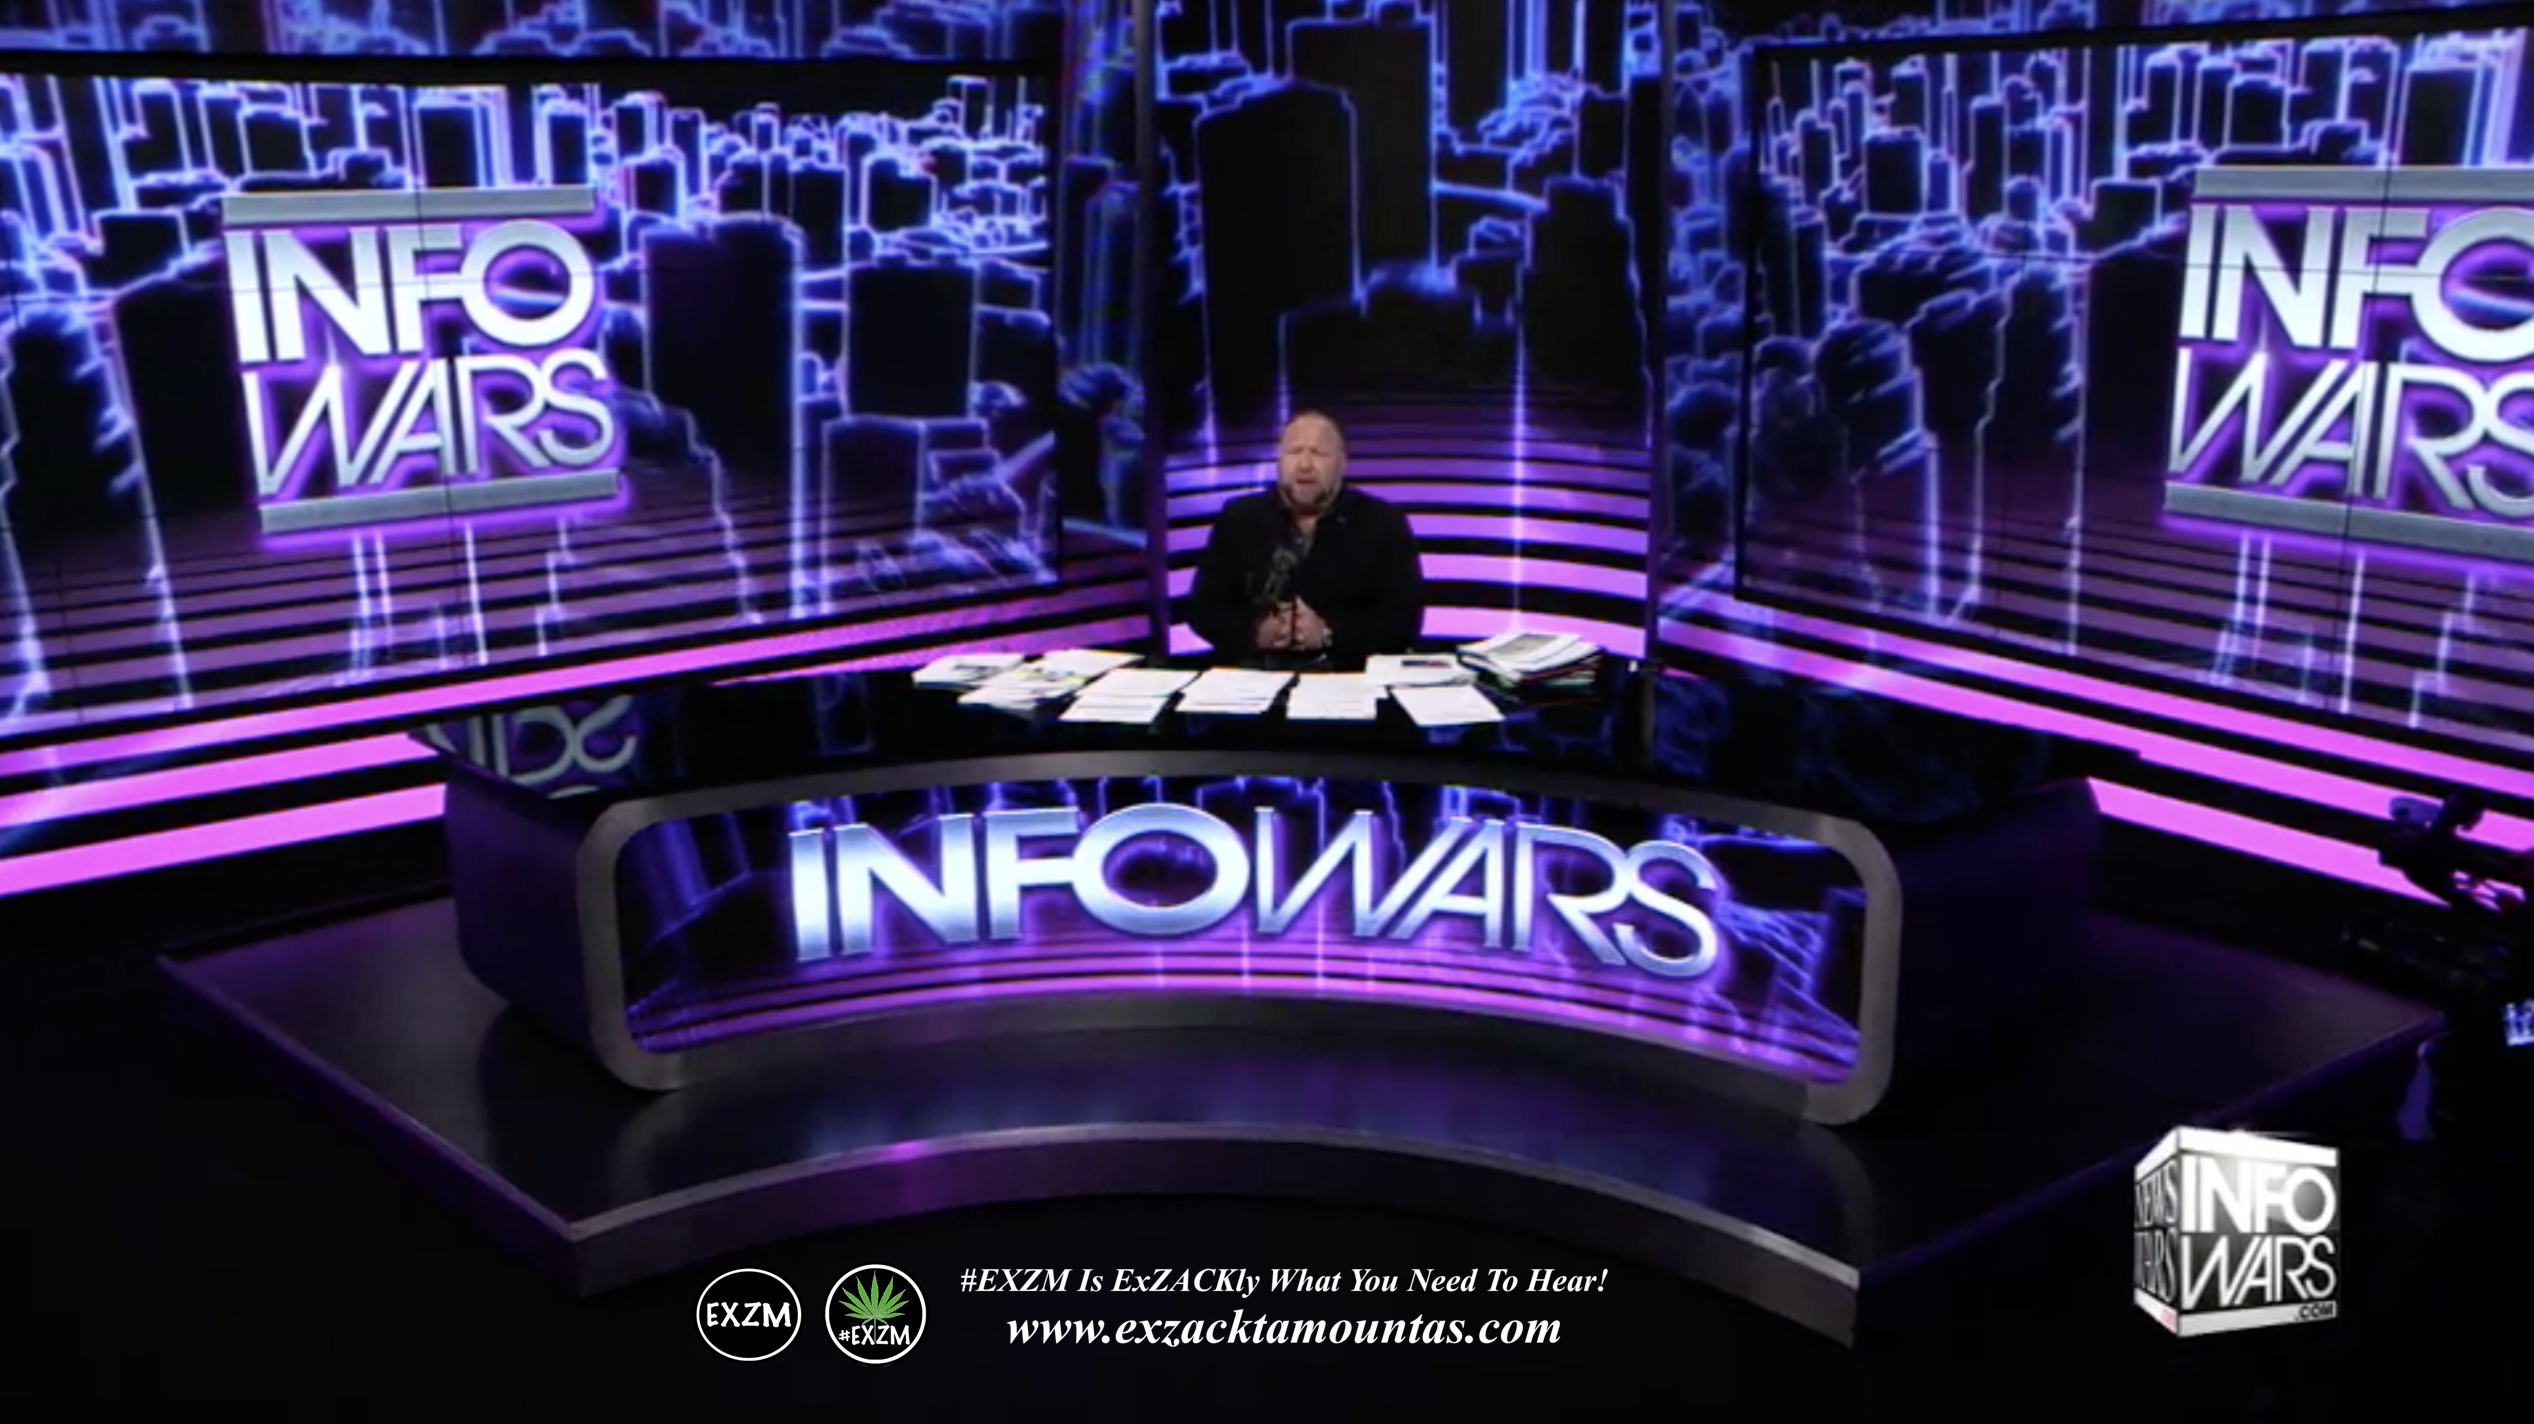 Alex Jones Live Infowars Studio EXZM Zack Mount May 12th 2021 copy